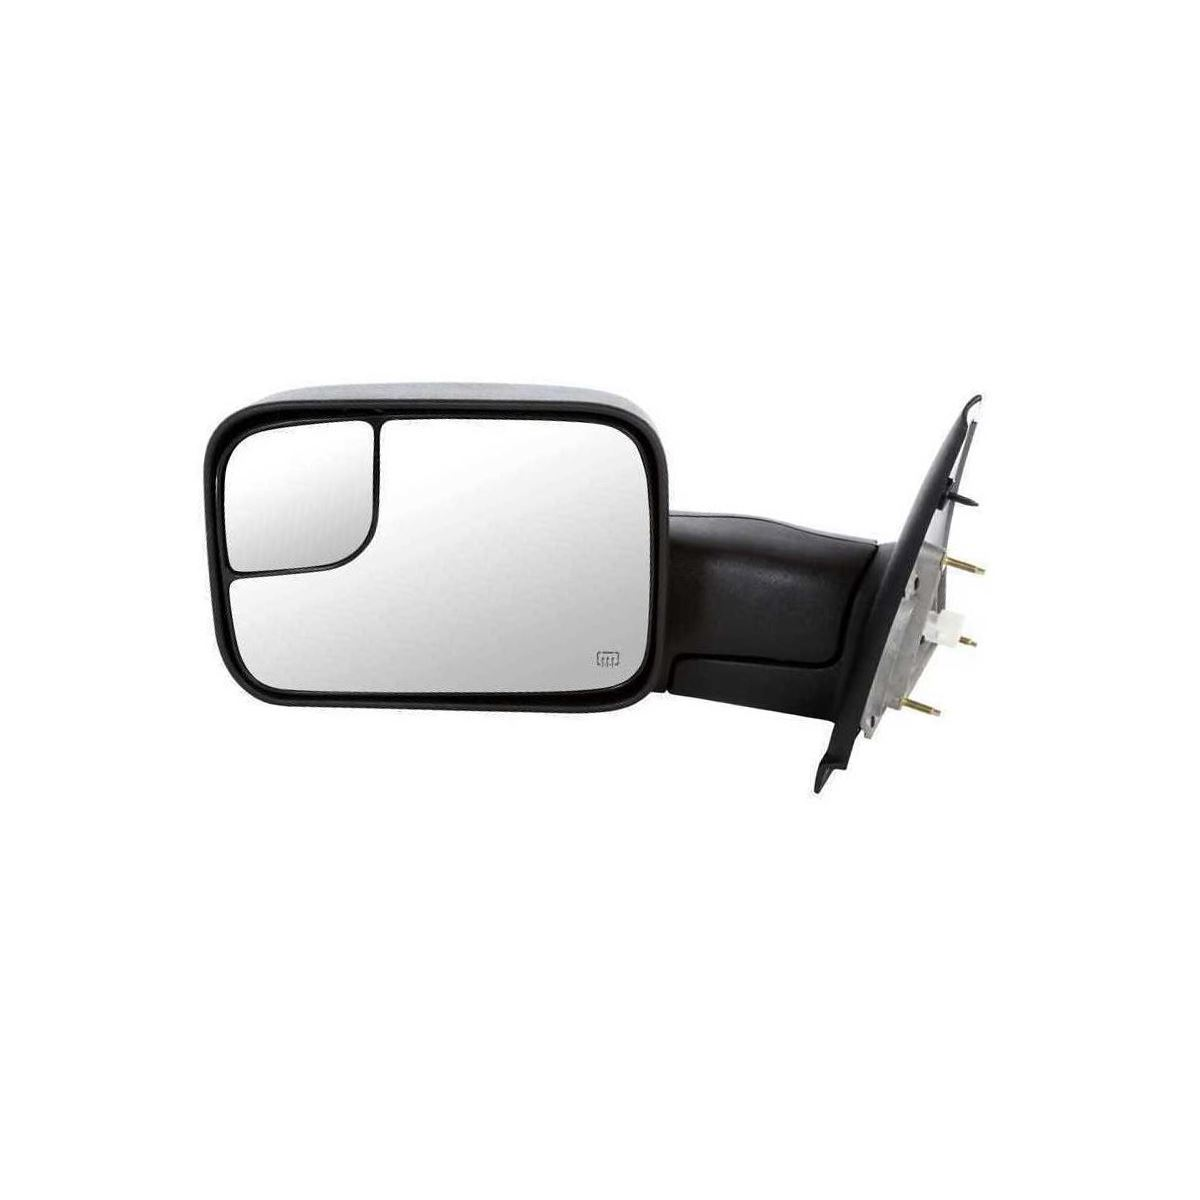 Prime Choice Auto Parts KAPFO1321350 Passenger Side Mirror